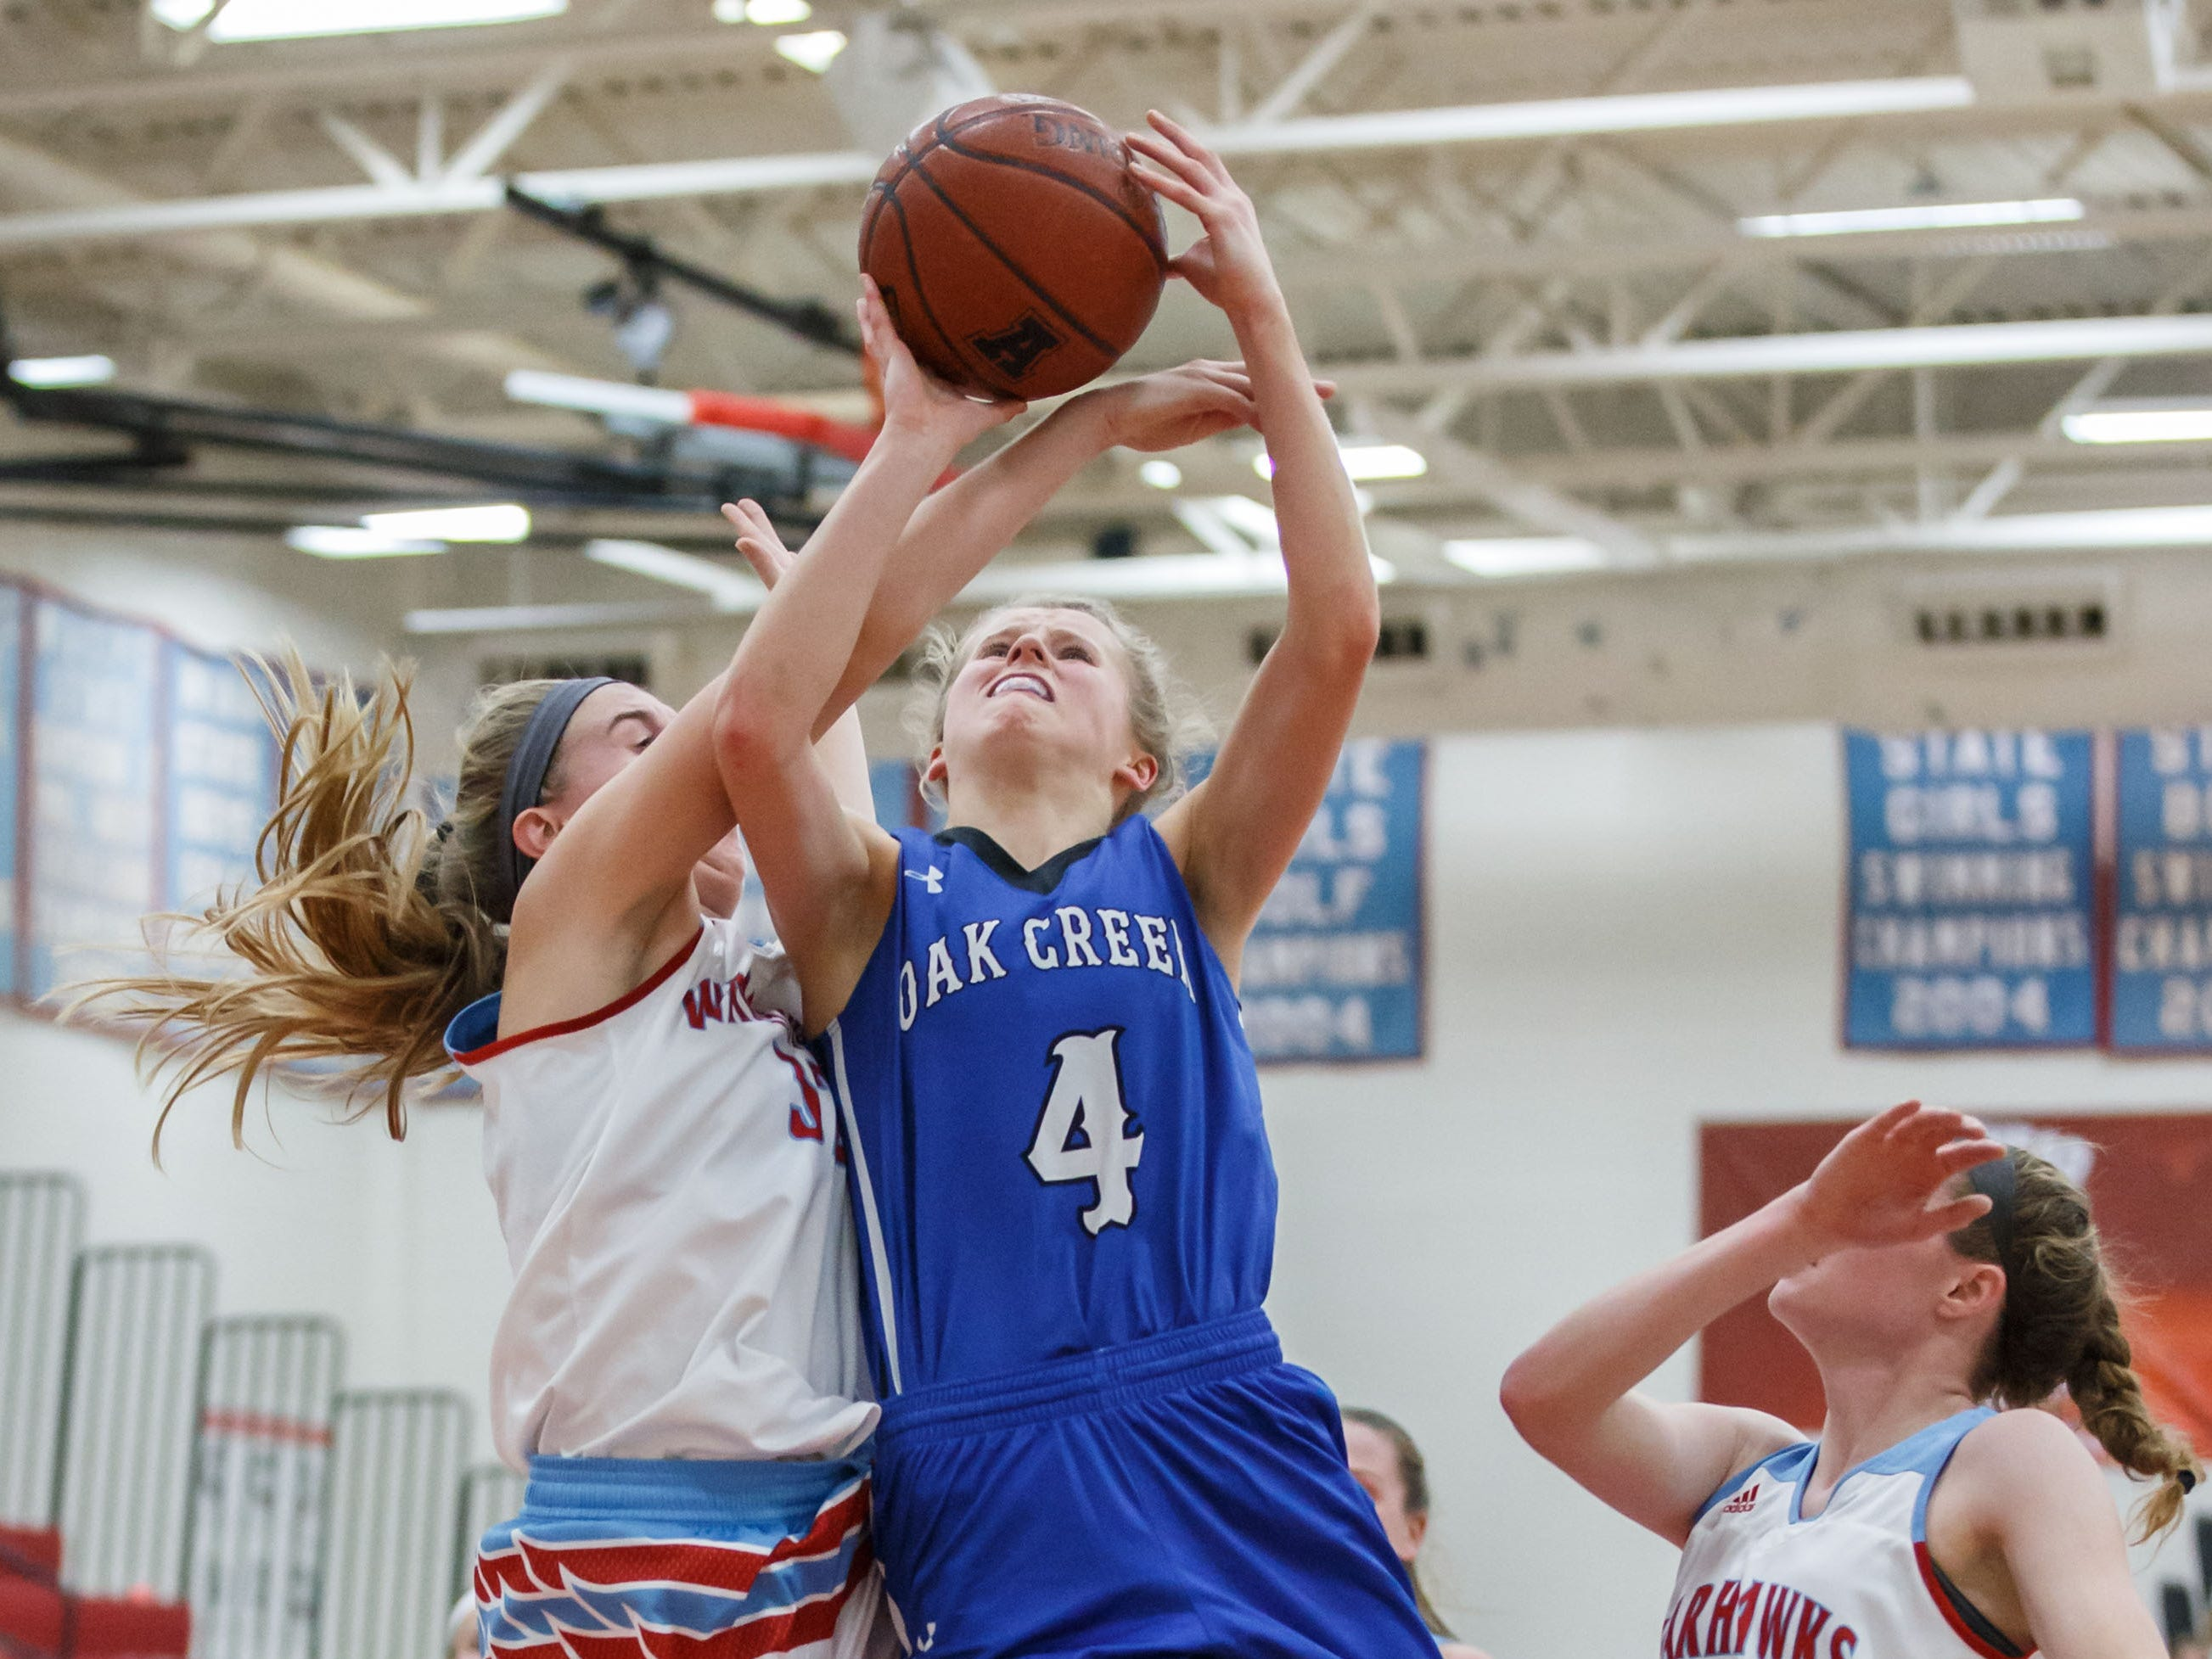 Oak Creek senior Maddie Gard (4) gets fouled by Arrowhead's Lauren With (32) during the game in Hartland on Friday, Nov. 16, 2018.